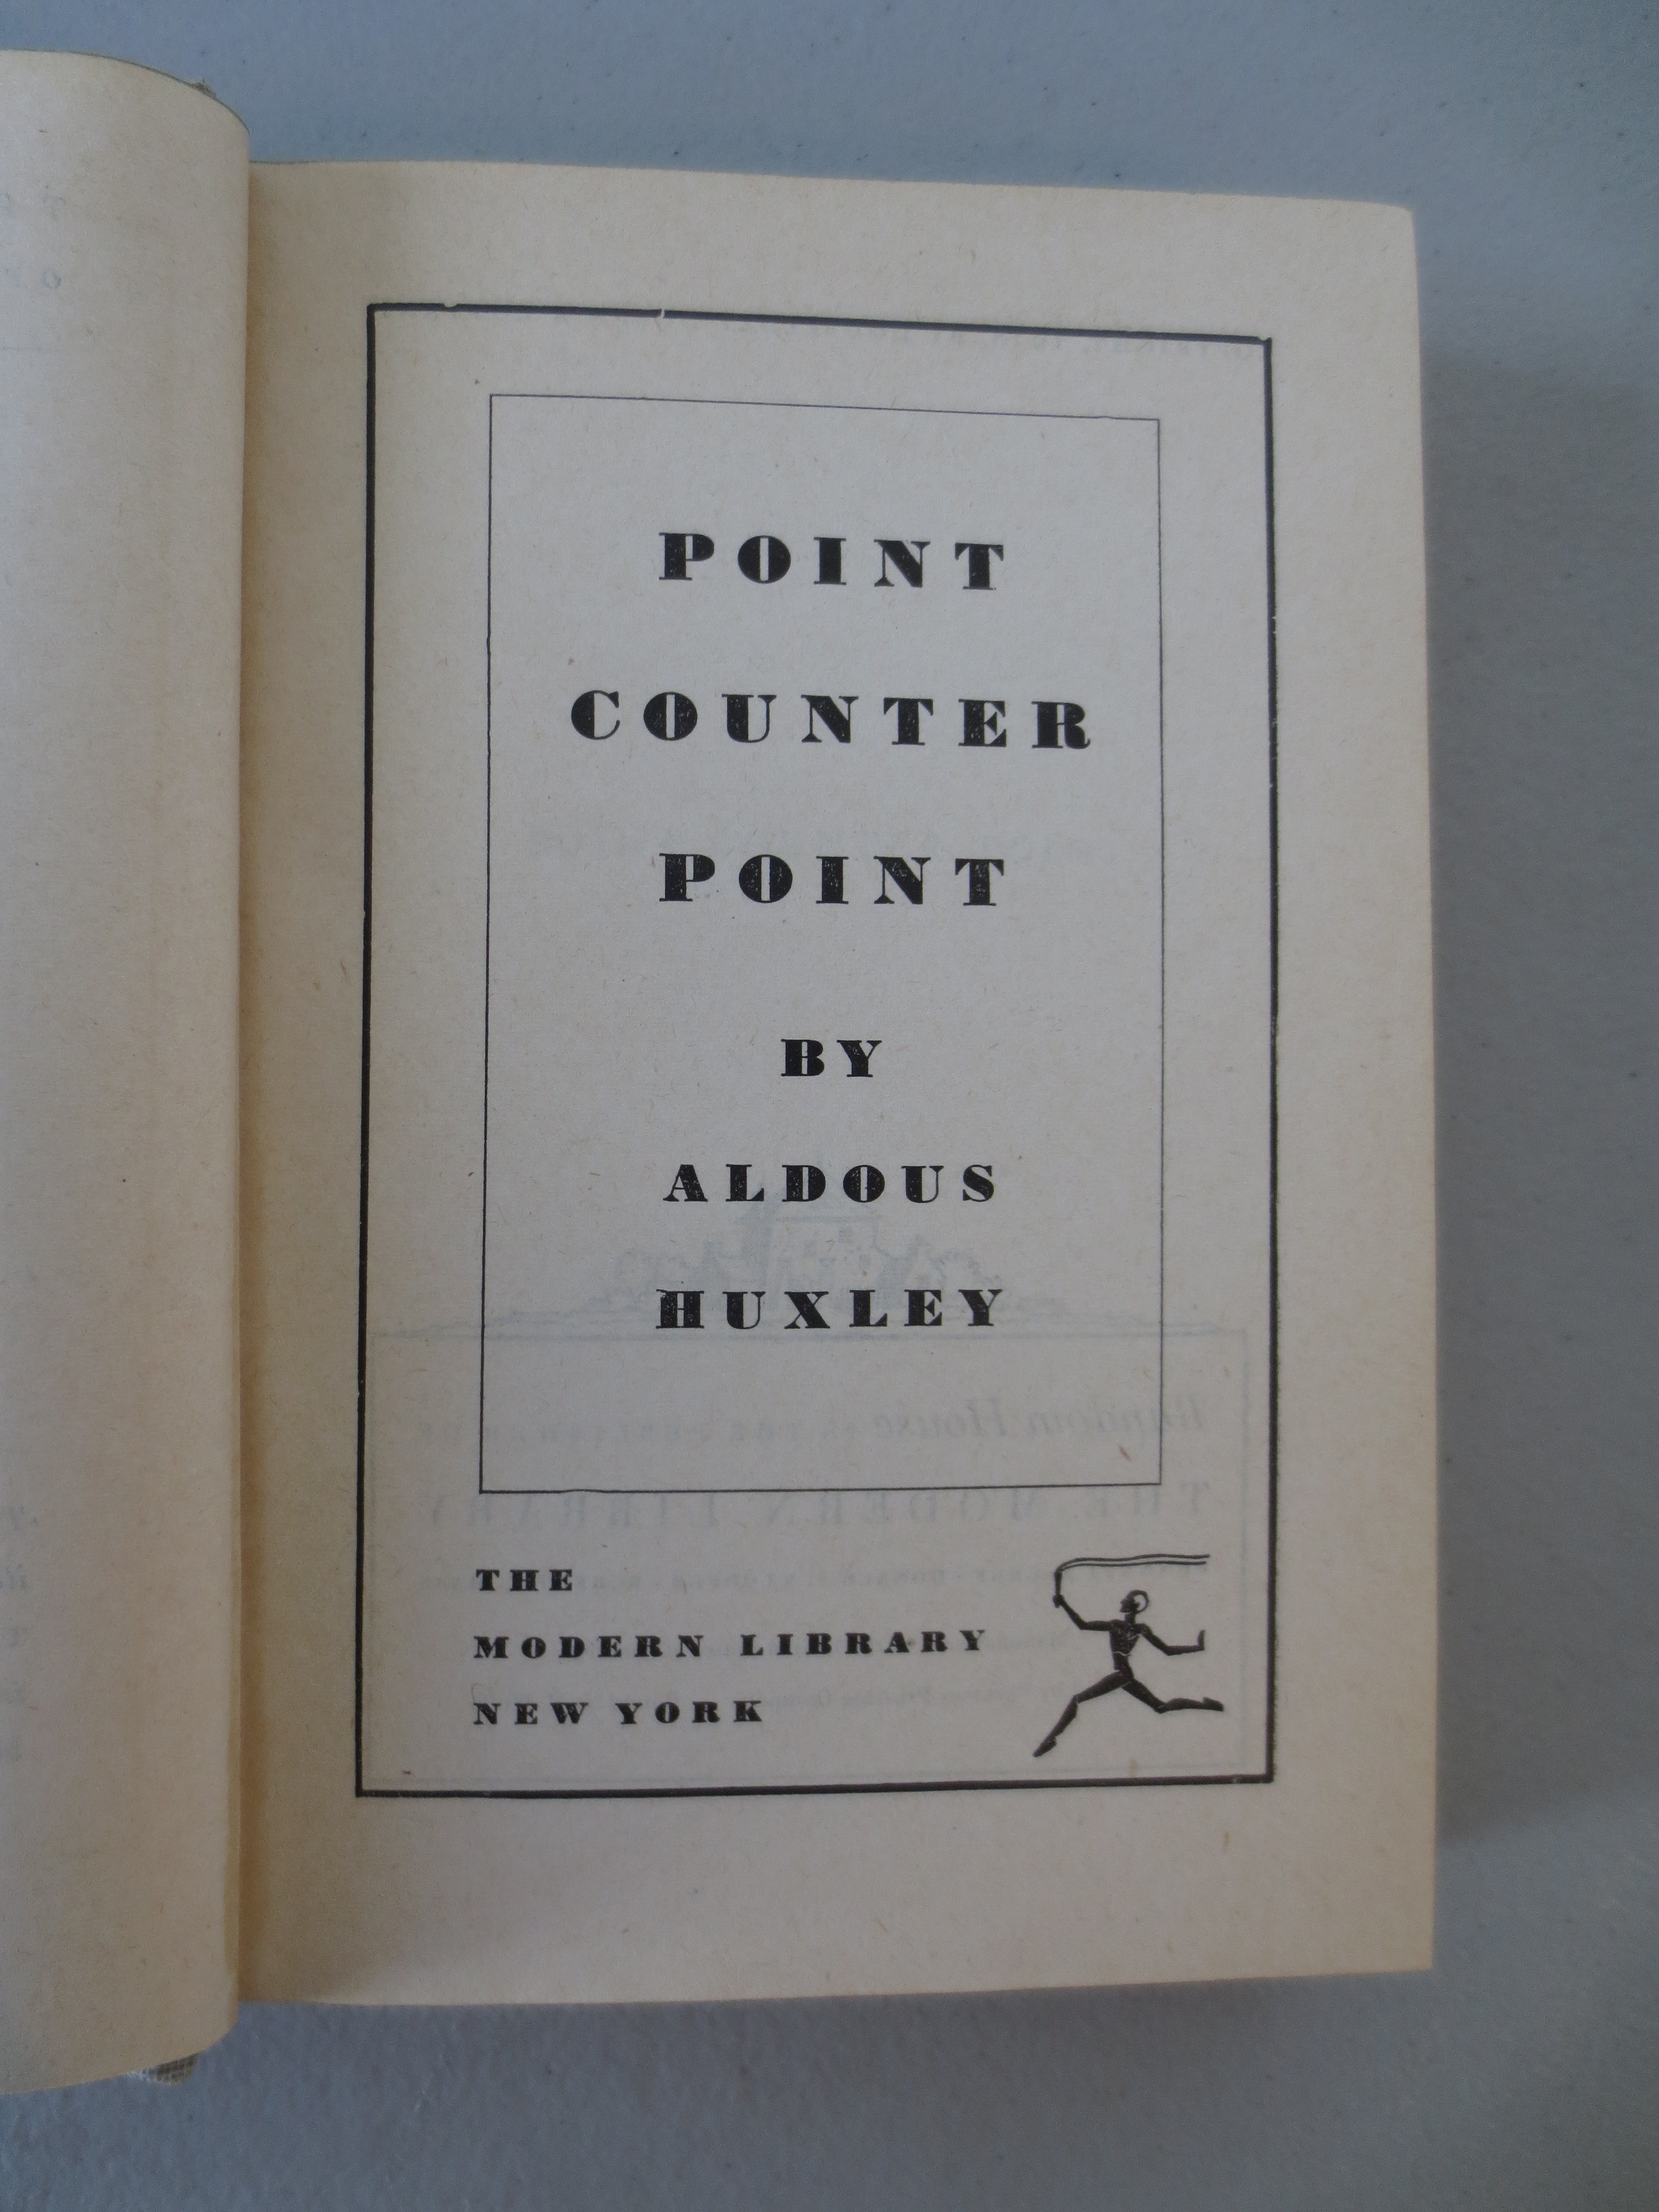 a description of the point counter point written by aldous huxley But huxley's emphasis on ideas and his skin as an essayist cannot hide one important fact: the books he wrote that are most read and best remembered today are all novels--crome yellow, antic hay, and point counter point from the 1920s, brave new world and after many a summer dies the swan from the 1930s in 1959 the american academy of arts and.